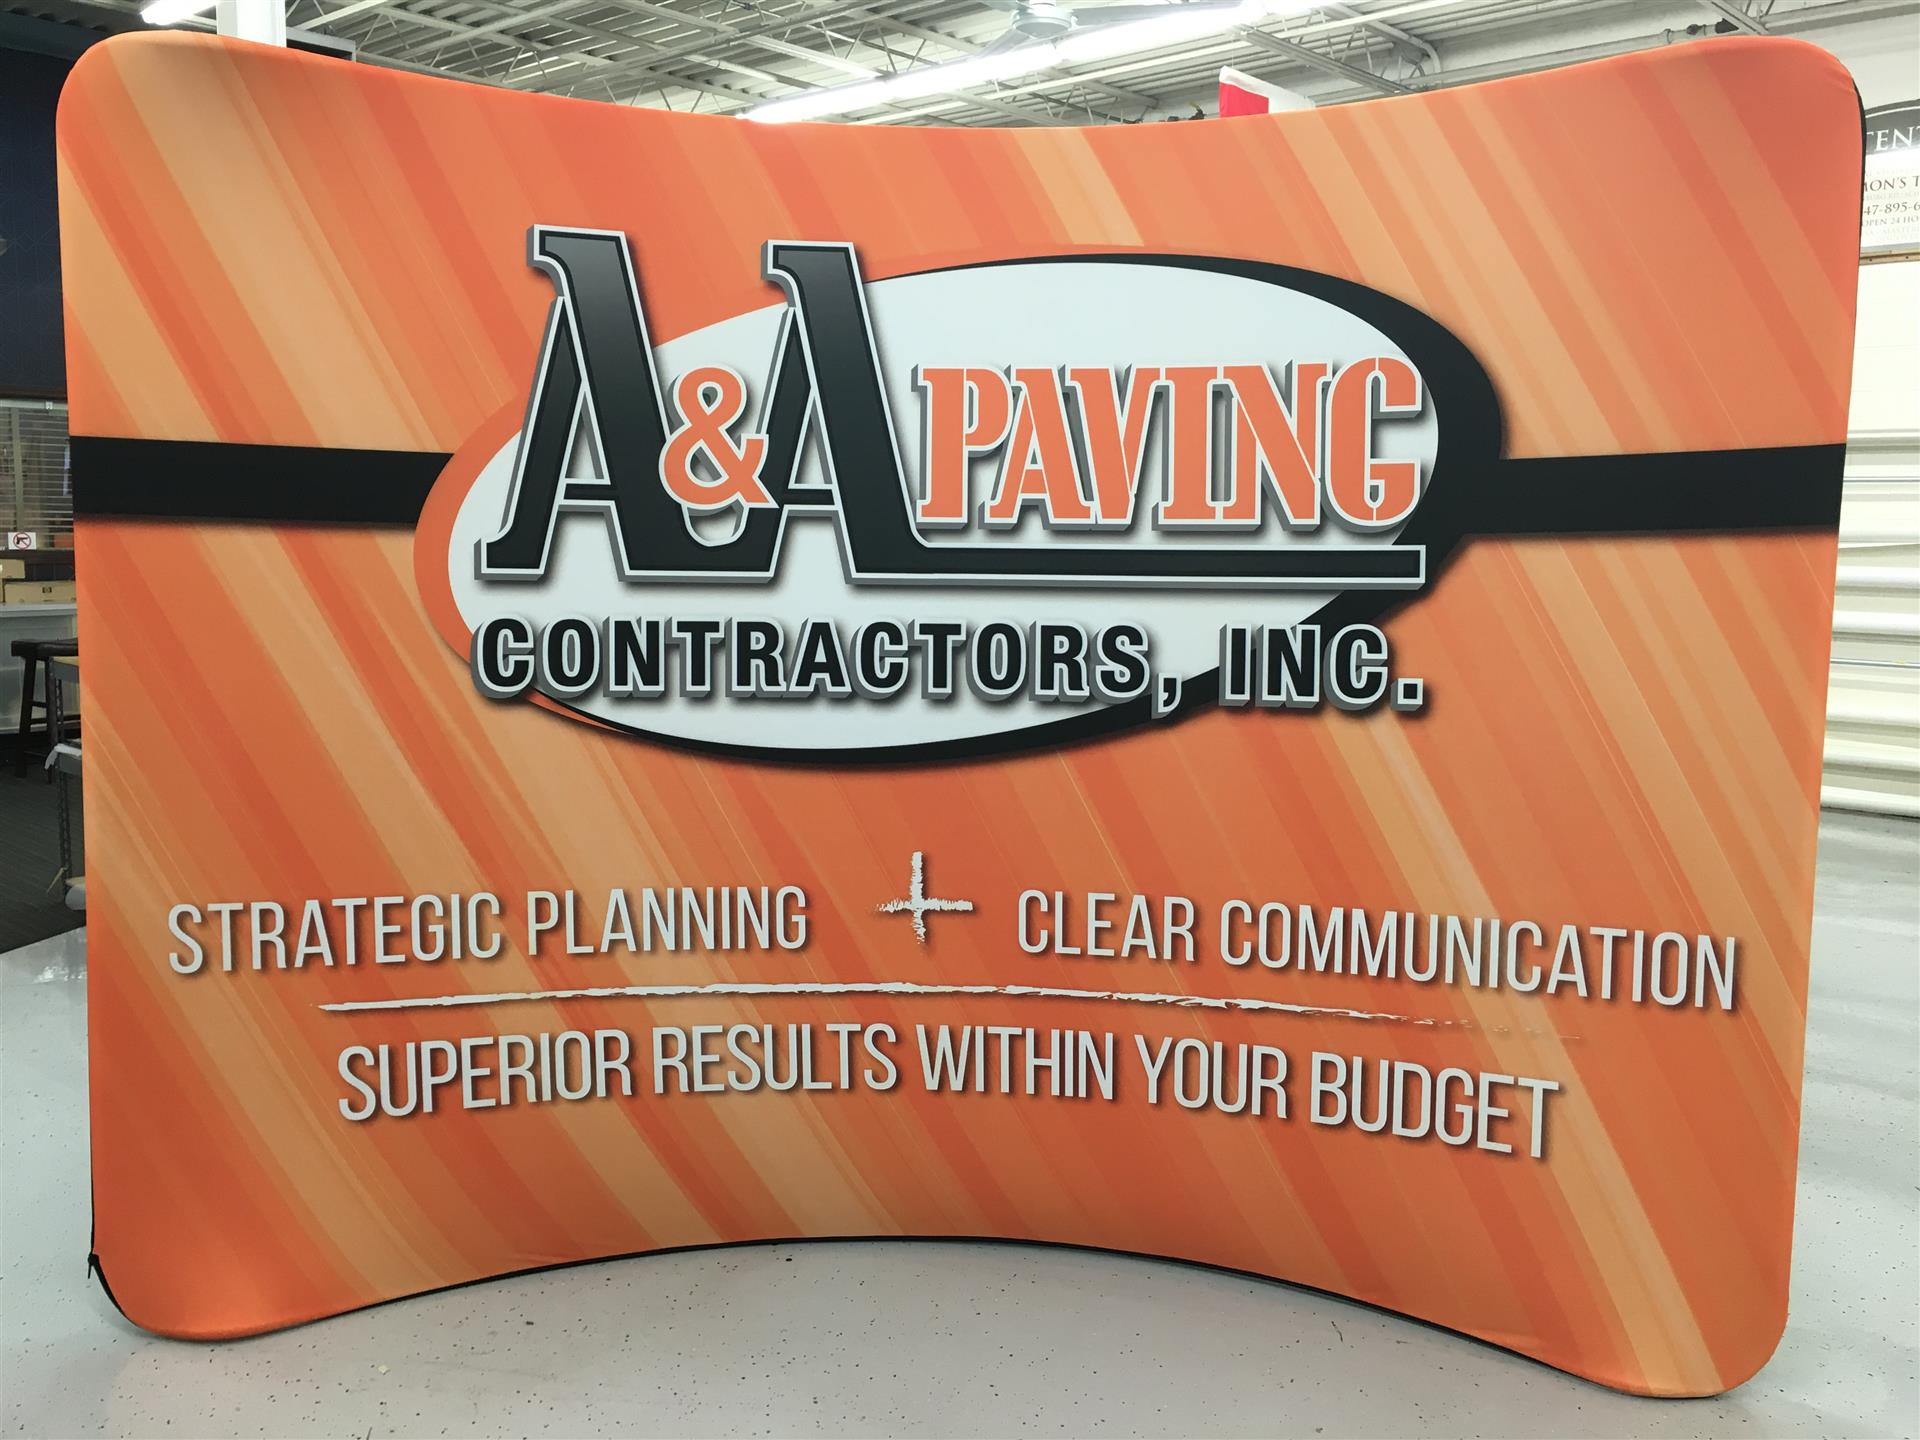 A&A Paving Contractors Trade Show Sign Stand